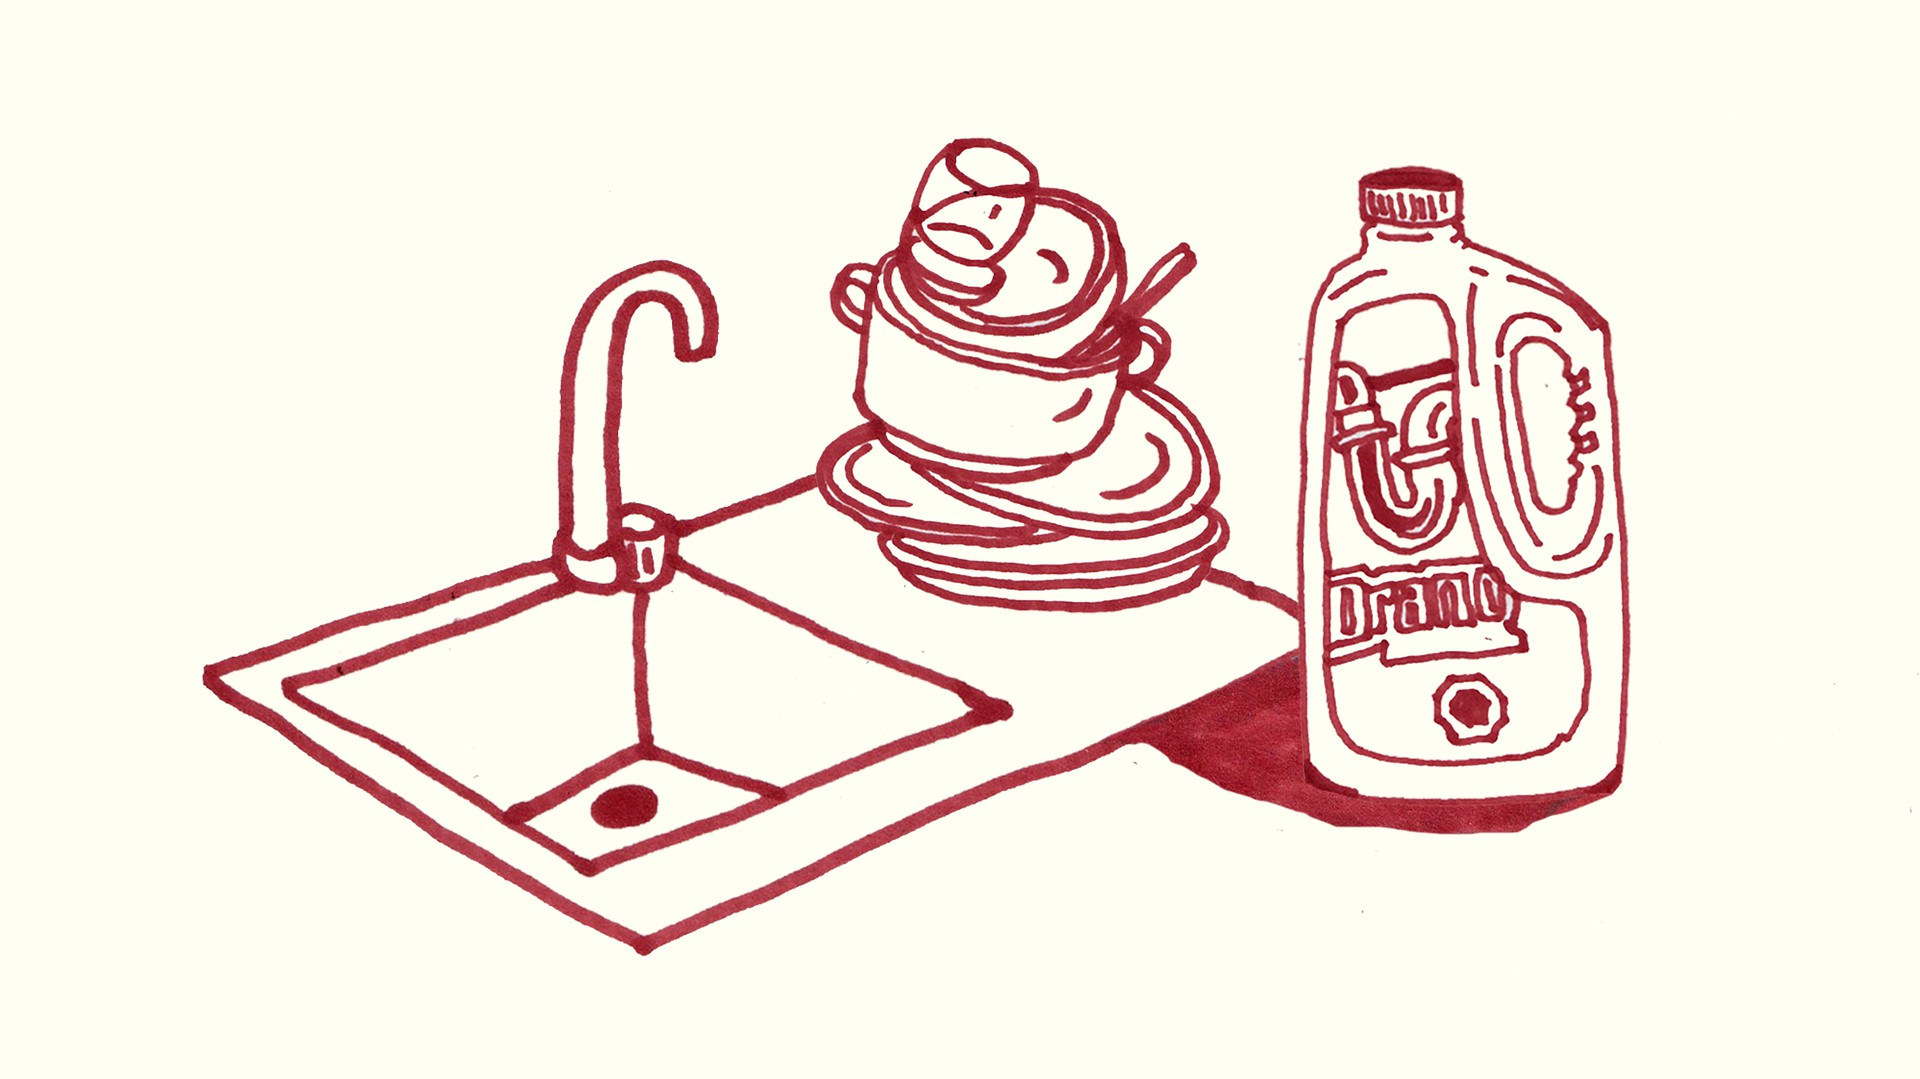 An illustration of a sink, Drano, and a pile of dishes against a cream-colored background